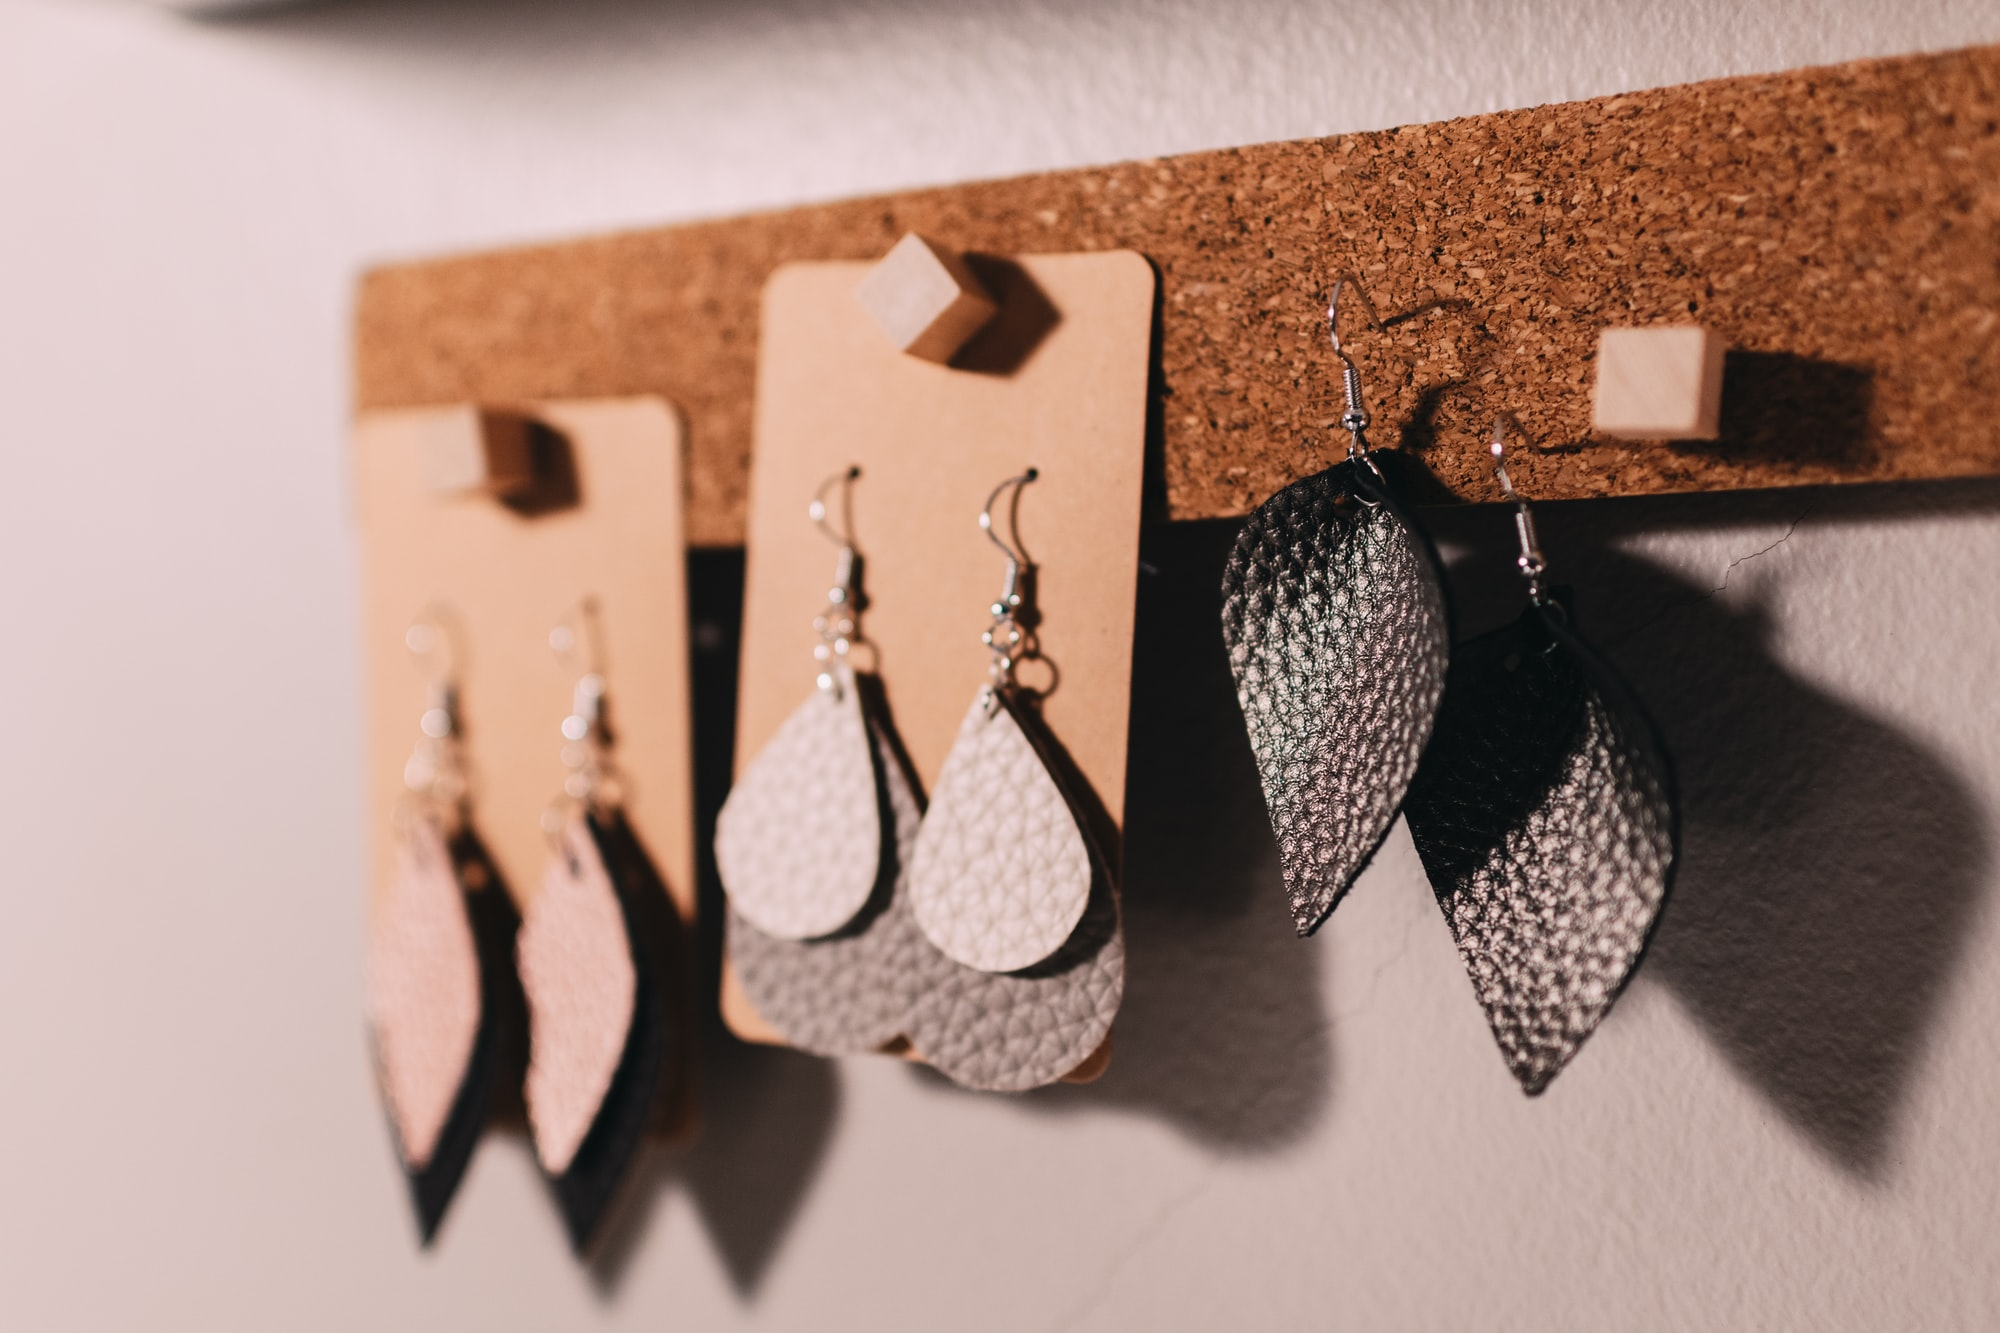 Leather earrings hanging together on a cork strip